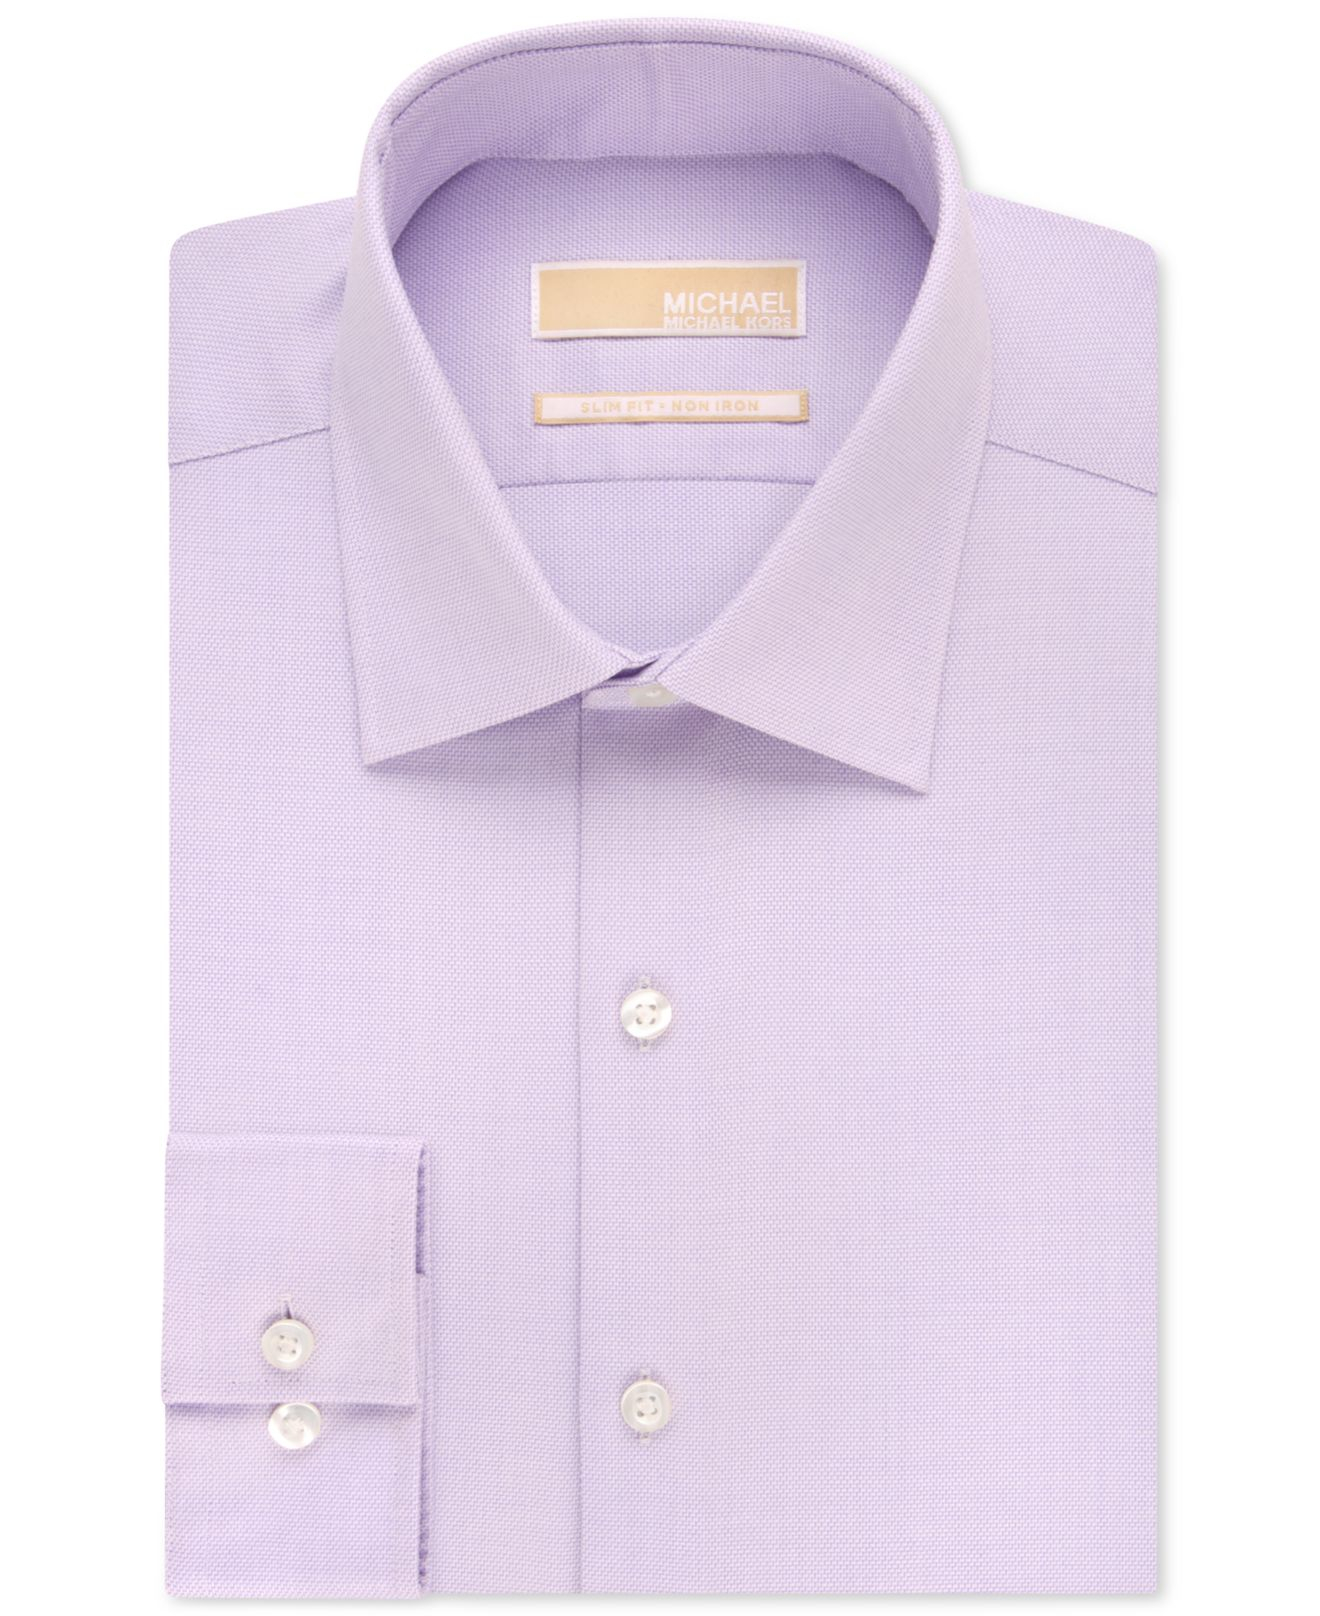 Michael kors michael slim fit non iron textured solid for Slim fit non iron dress shirts